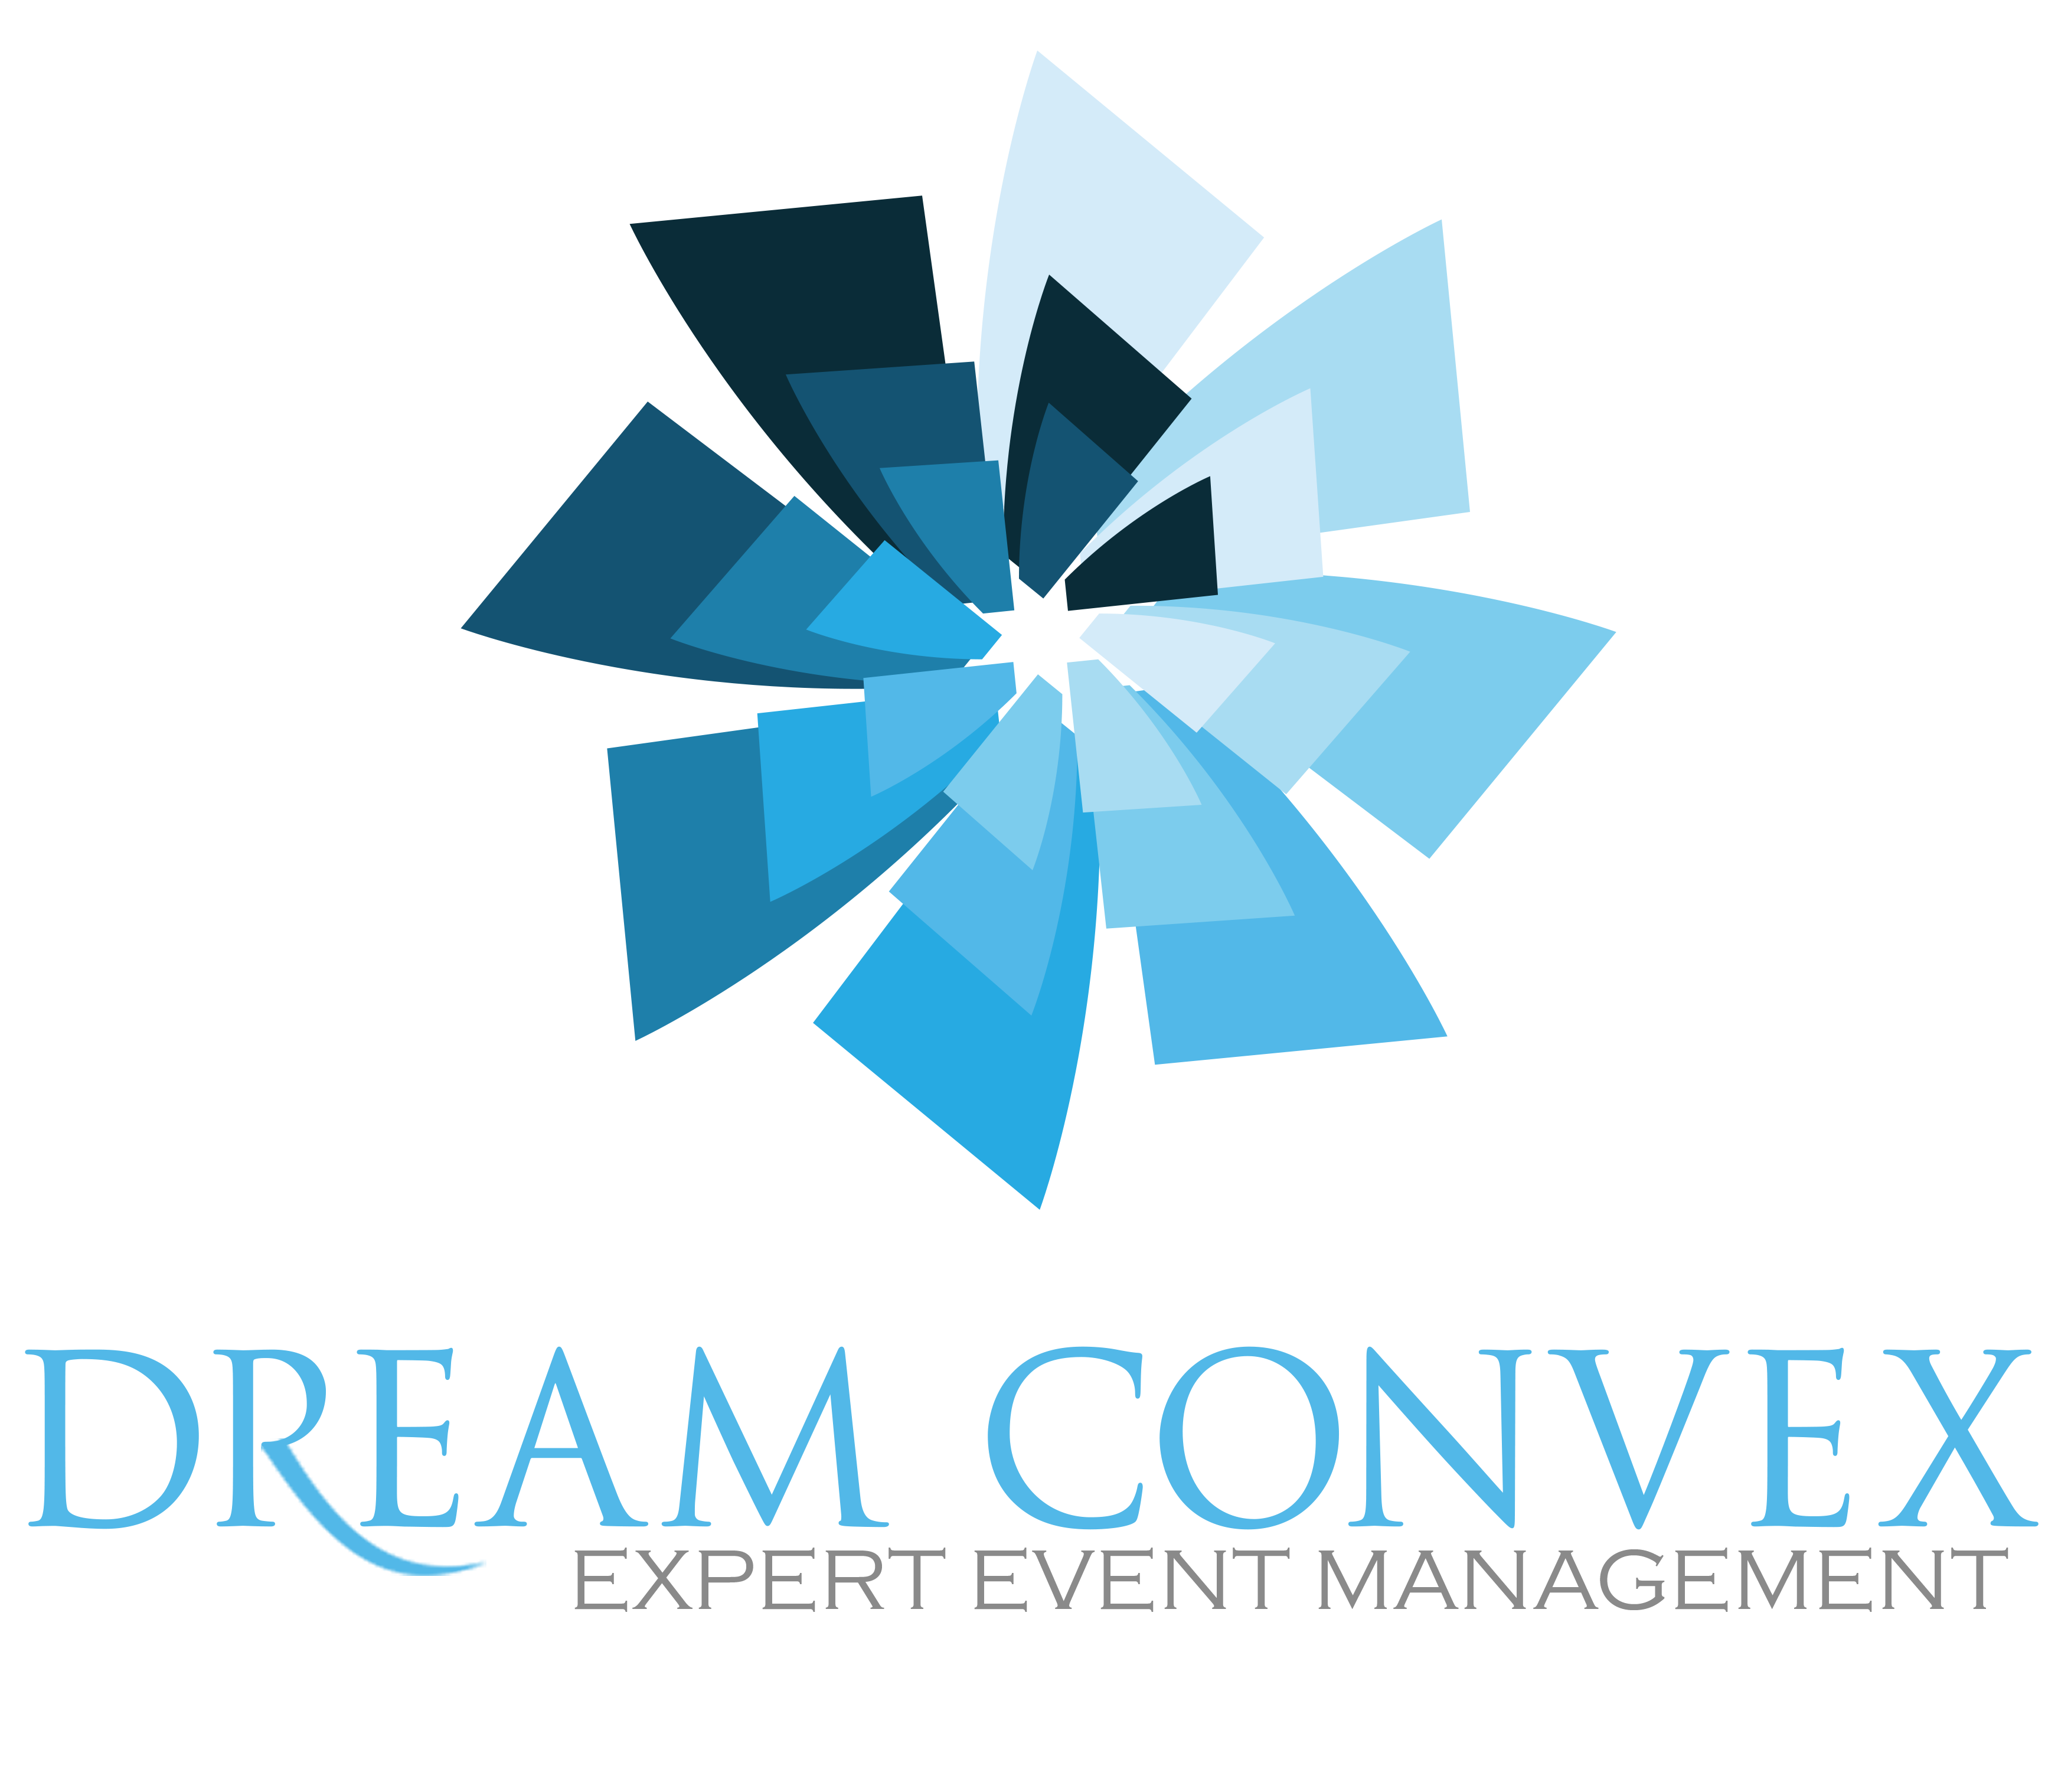 dream convex